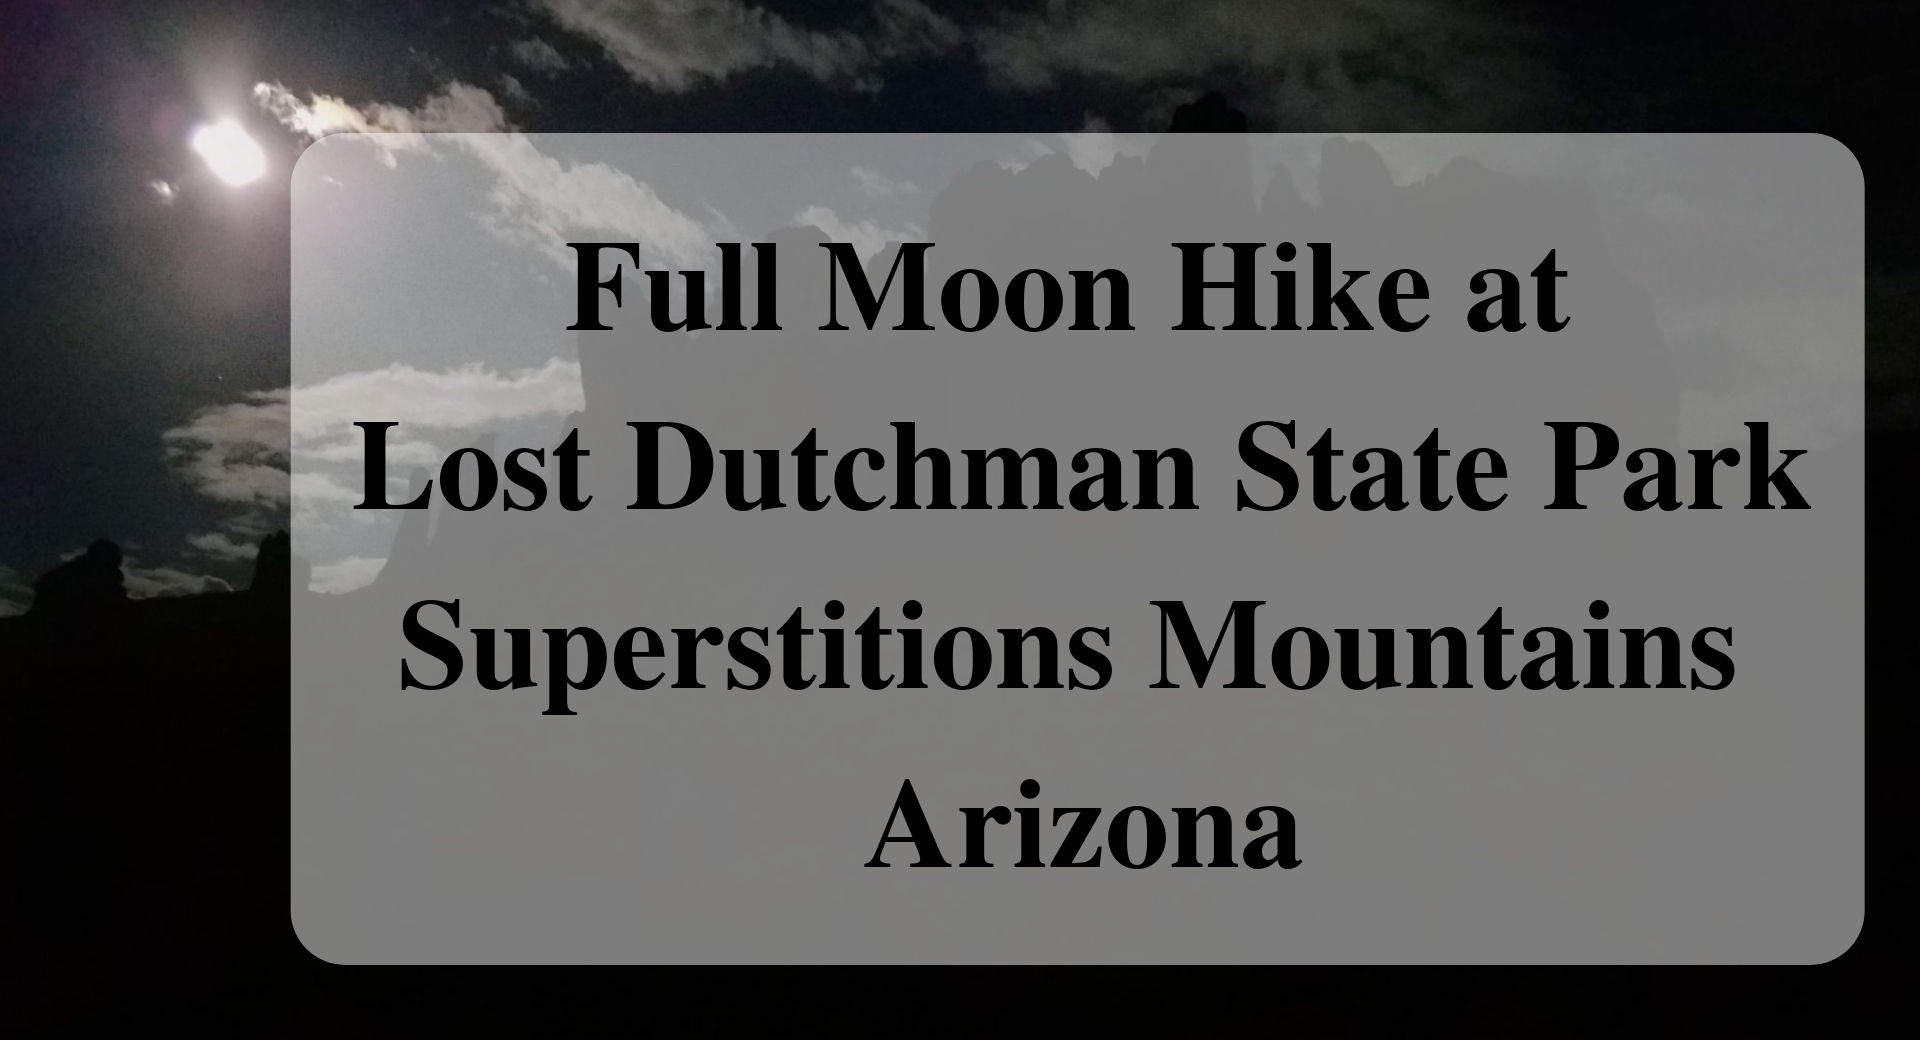 Full Moon Hike at Lost Dutchman State Park Superstitions Mountains Arizona Forever Sabbatical